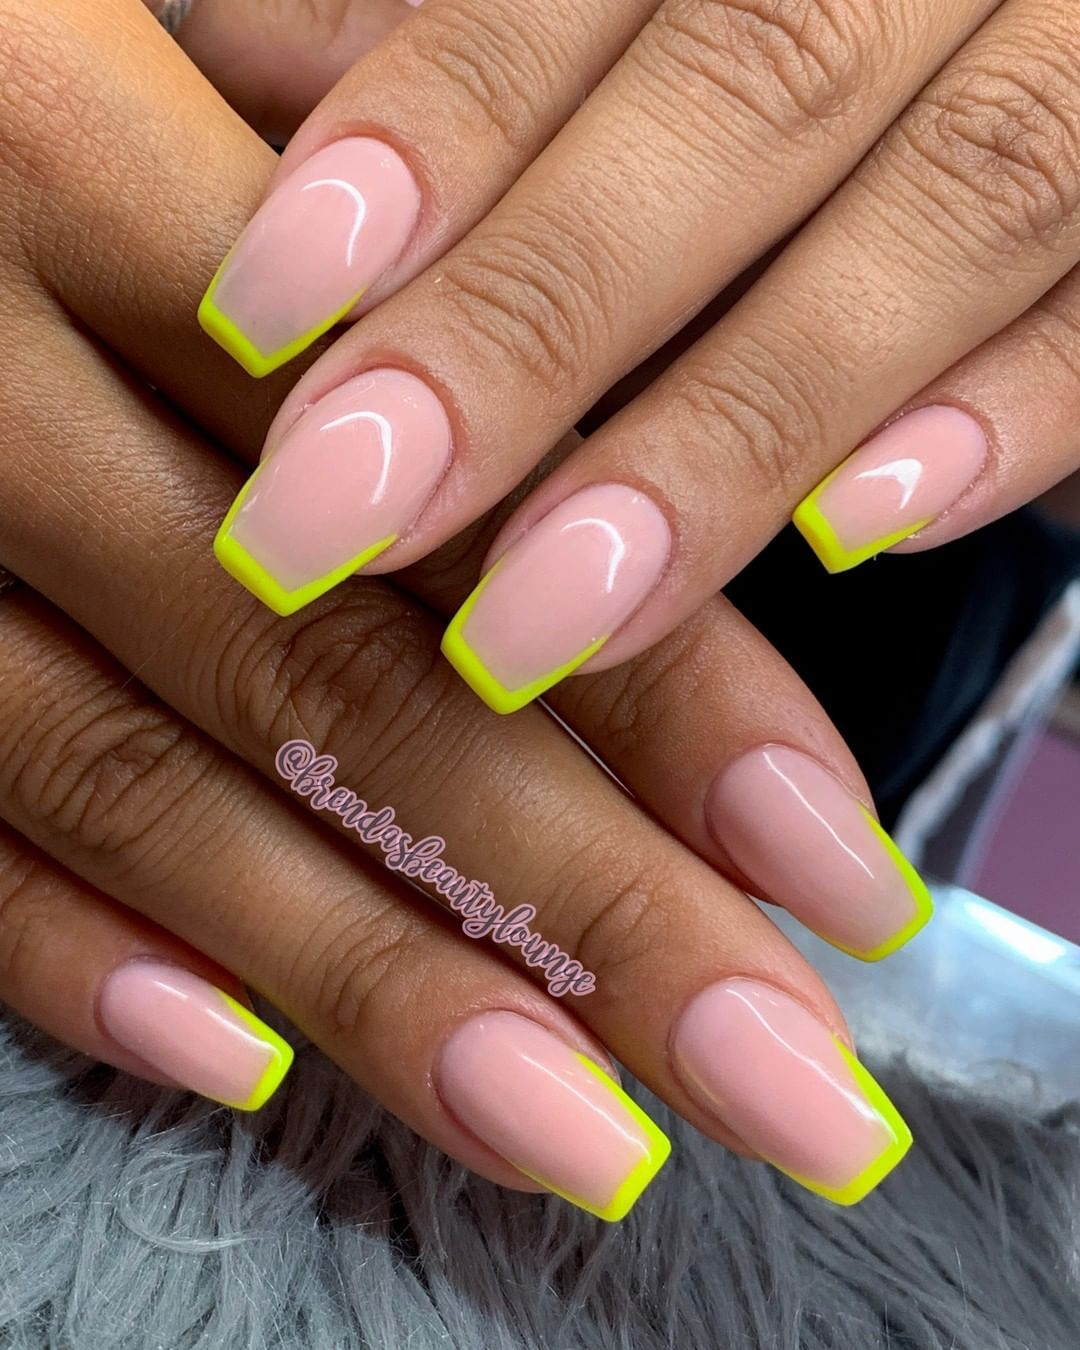 Neon Outline Nails Coffin Nails Summer Nail Designs Nail Art Summer Nails Coffin Short Coffin Nails Designs Acrylic Nails Coffin Short Neon Acrylic Nails